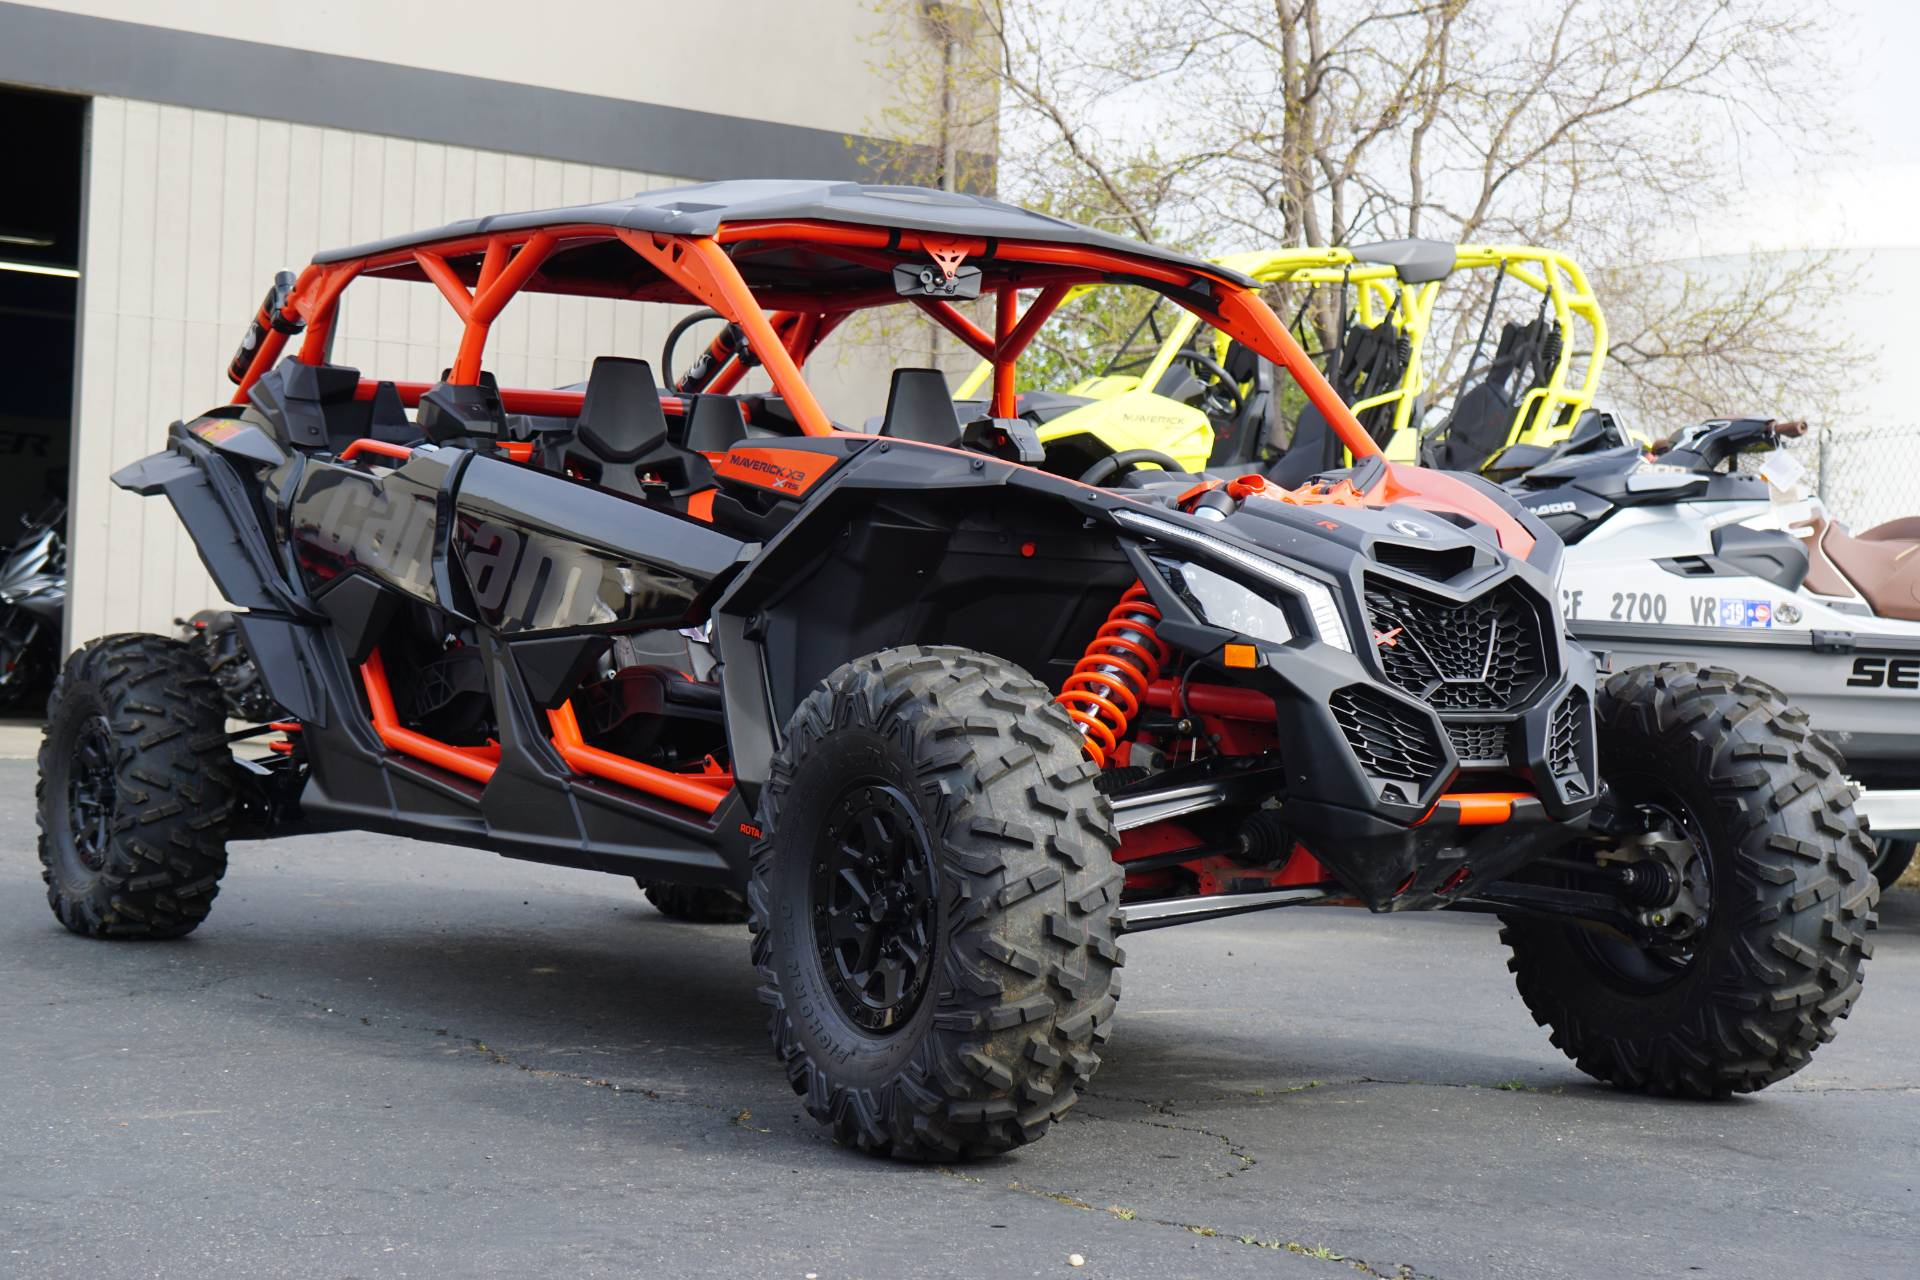 2018 Can-Am Maverick X3 Max X rs Turbo R for sale 105441